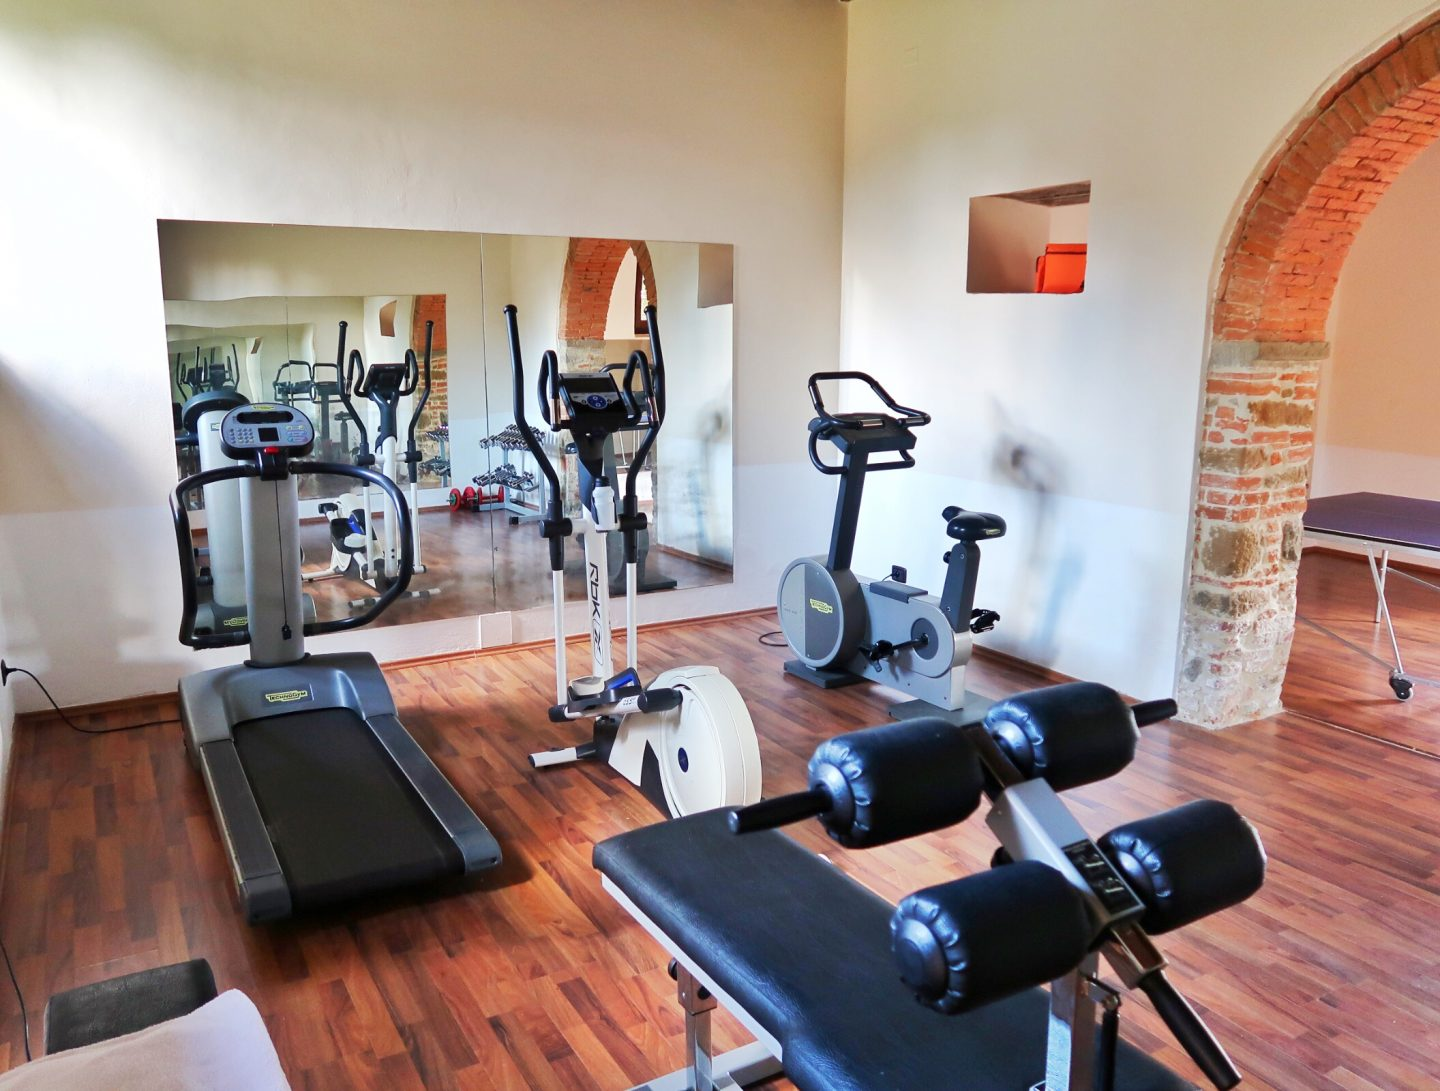 The amazing gym at the villa we stayed at courtesy of Bookings for you, modern and spacious with plenty of equipment and a large mirror at the end.